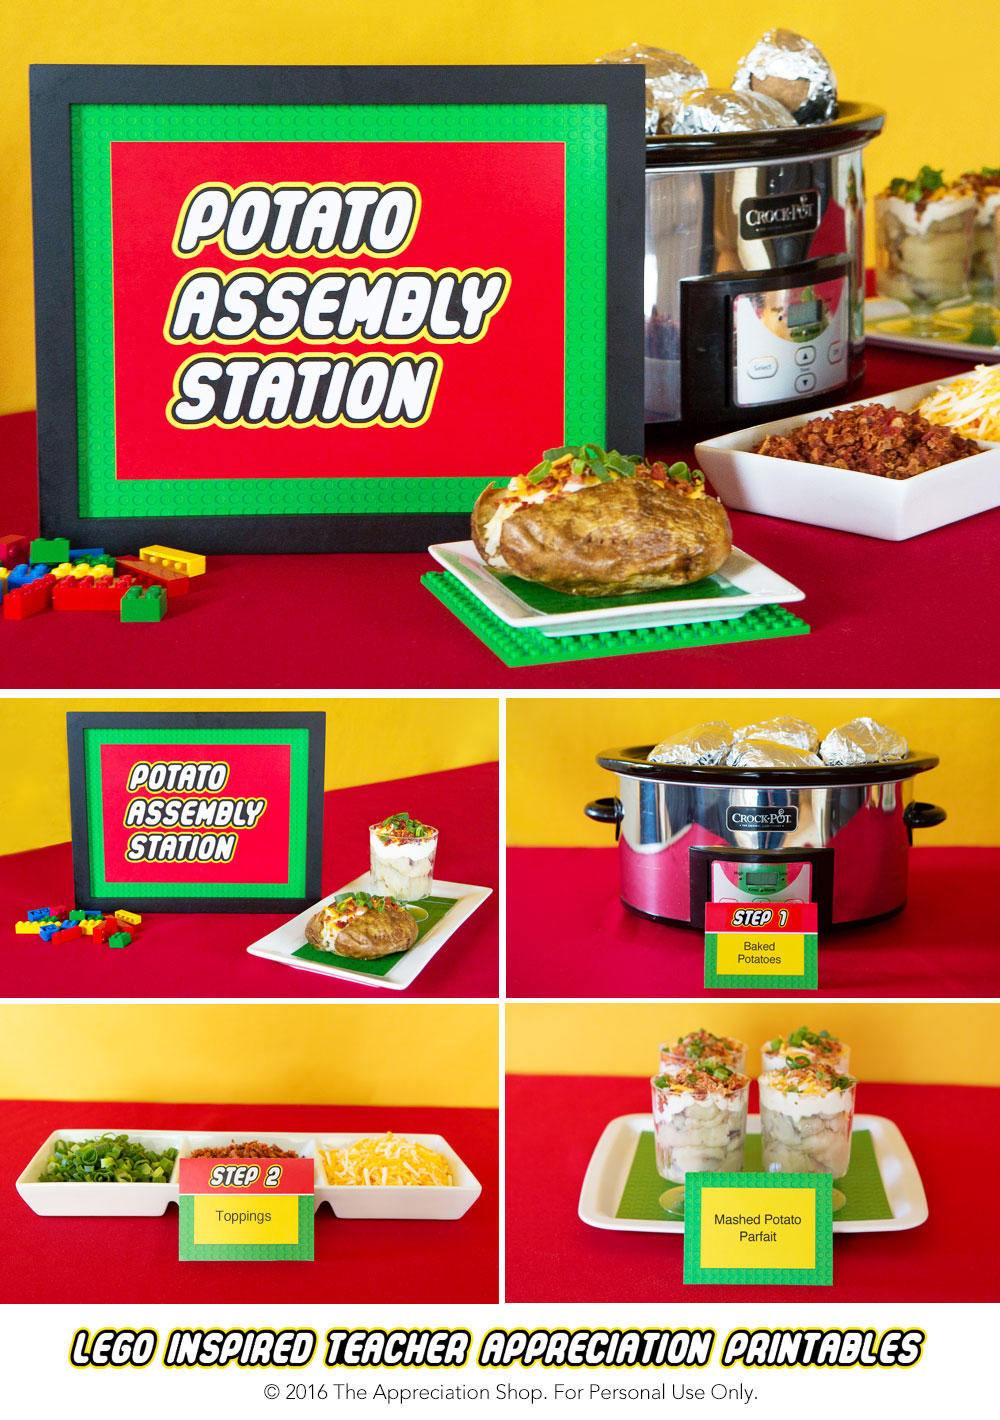 Potato Assembly Station Sign + Labels - The Appreciation Shop